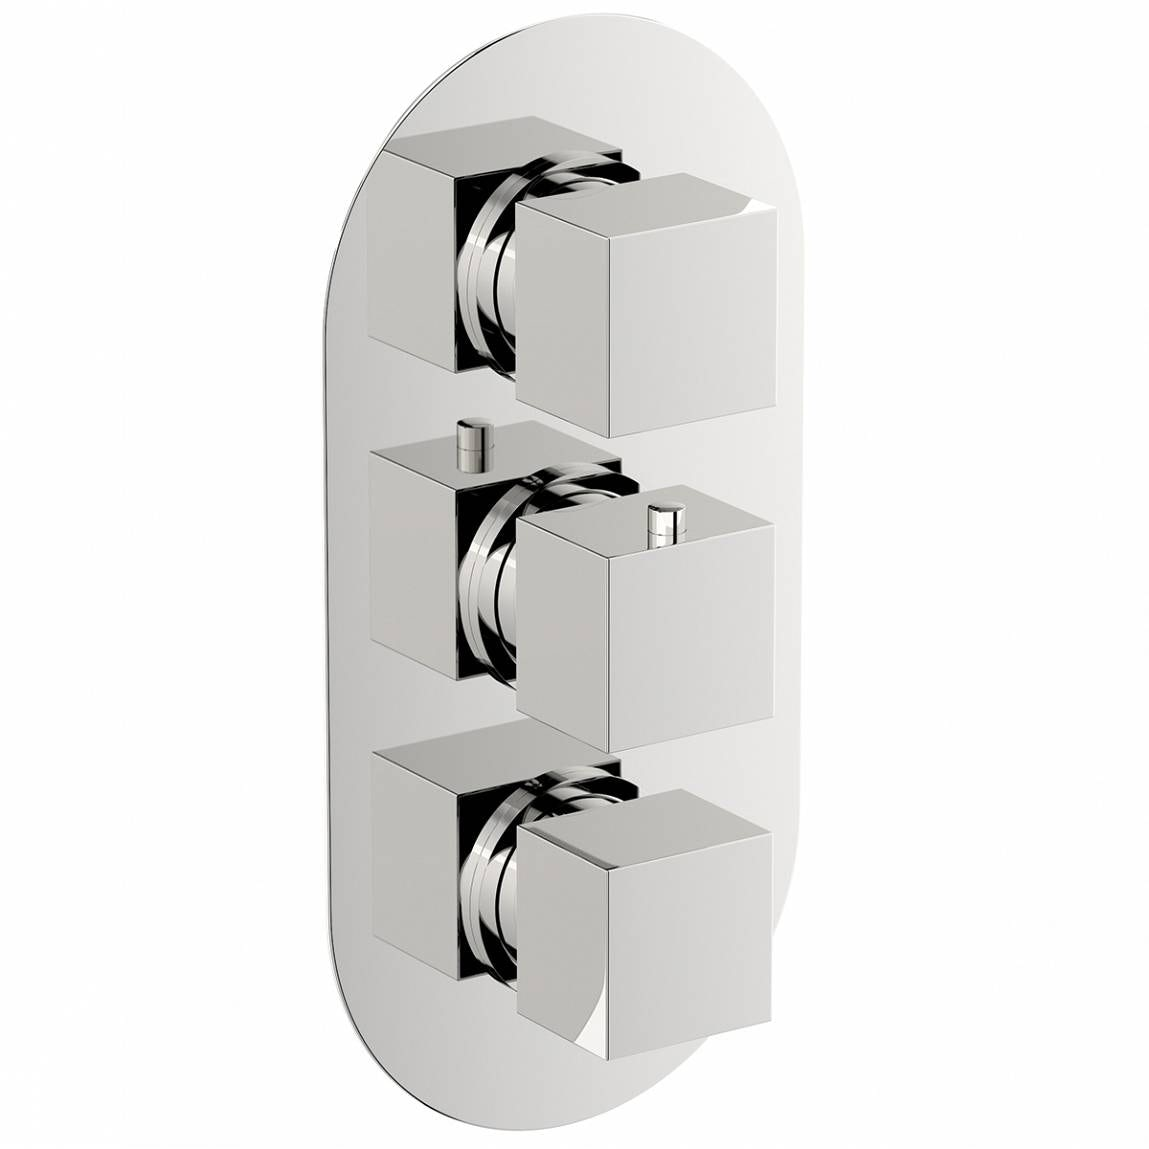 Mode Cubik oval triple thermostatic shower valve with diverter